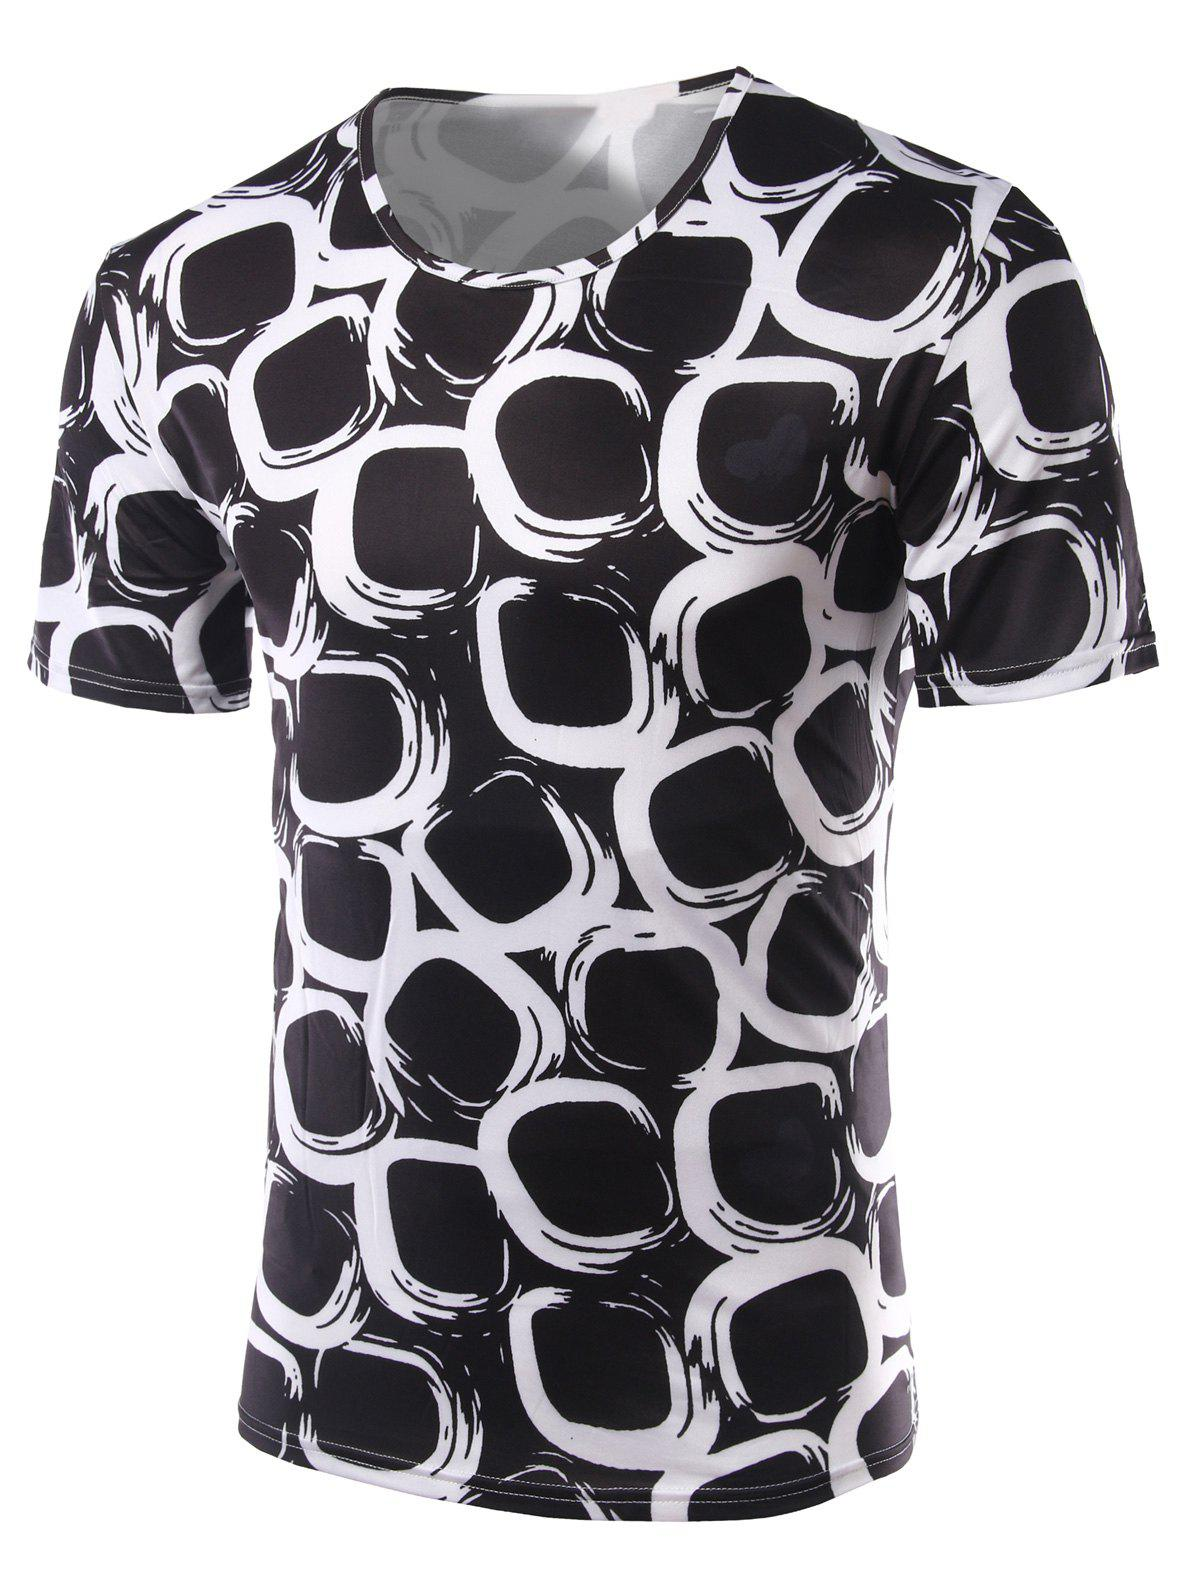 Slim Fit Printing Round Collar Short Sleeves T-Shirts For Men